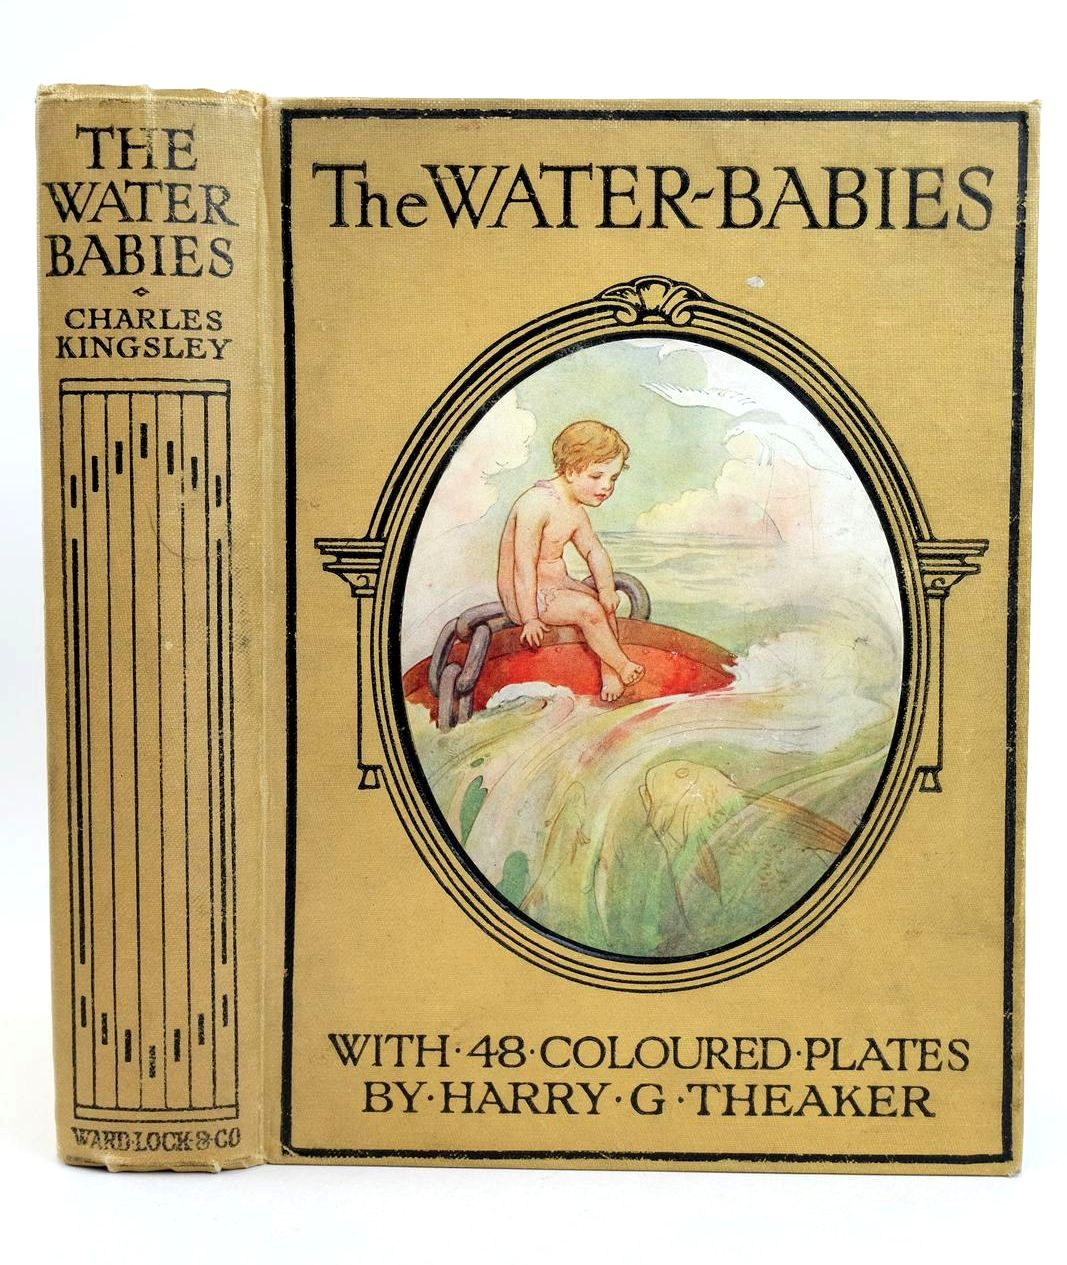 Photo of THE WATER-BABIES written by Kingsley, Charles illustrated by Theaker, Harry published by Ward Lock & Co Ltd. (STOCK CODE: 1318802)  for sale by Stella & Rose's Books